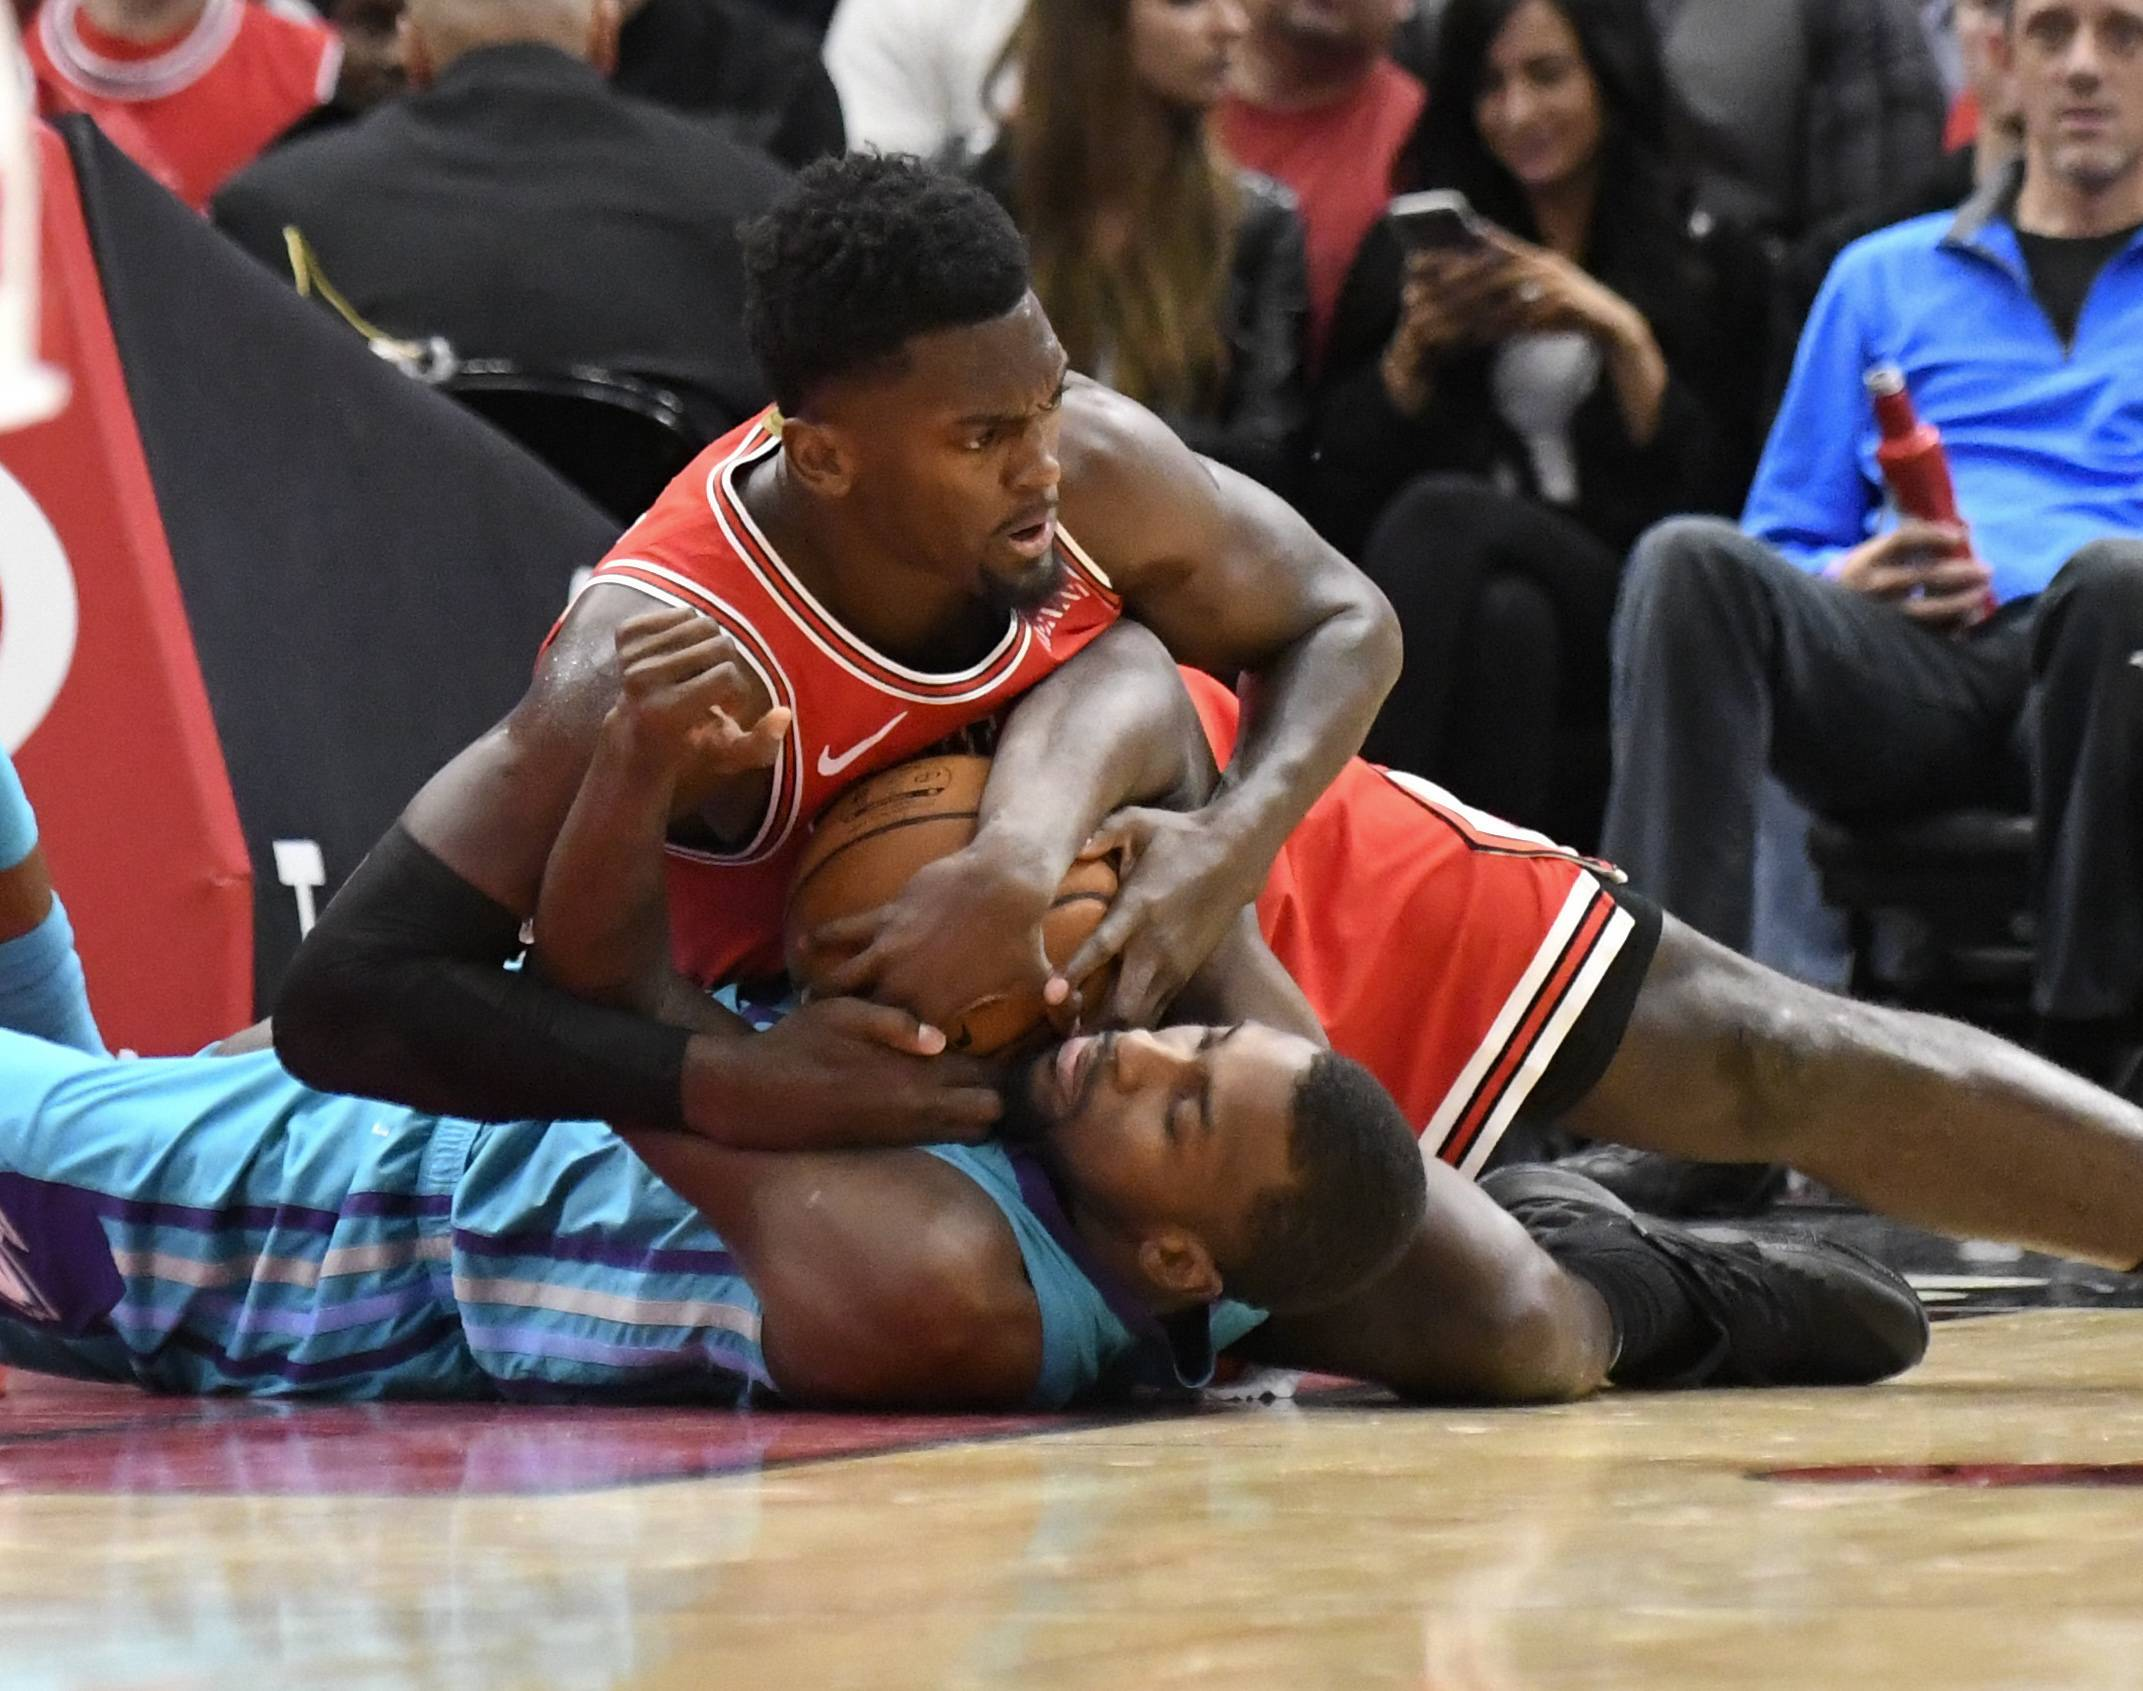 Chicago Bulls forward Bobby Portis, top, and Charlotte Hornets forward Michael Kidd-Gilchrist, bottom, fight for the ball during the second half of a NBA basketball game Wednesday, Oct. 24, 2018, in Chicago. The Bulls won 112-110.